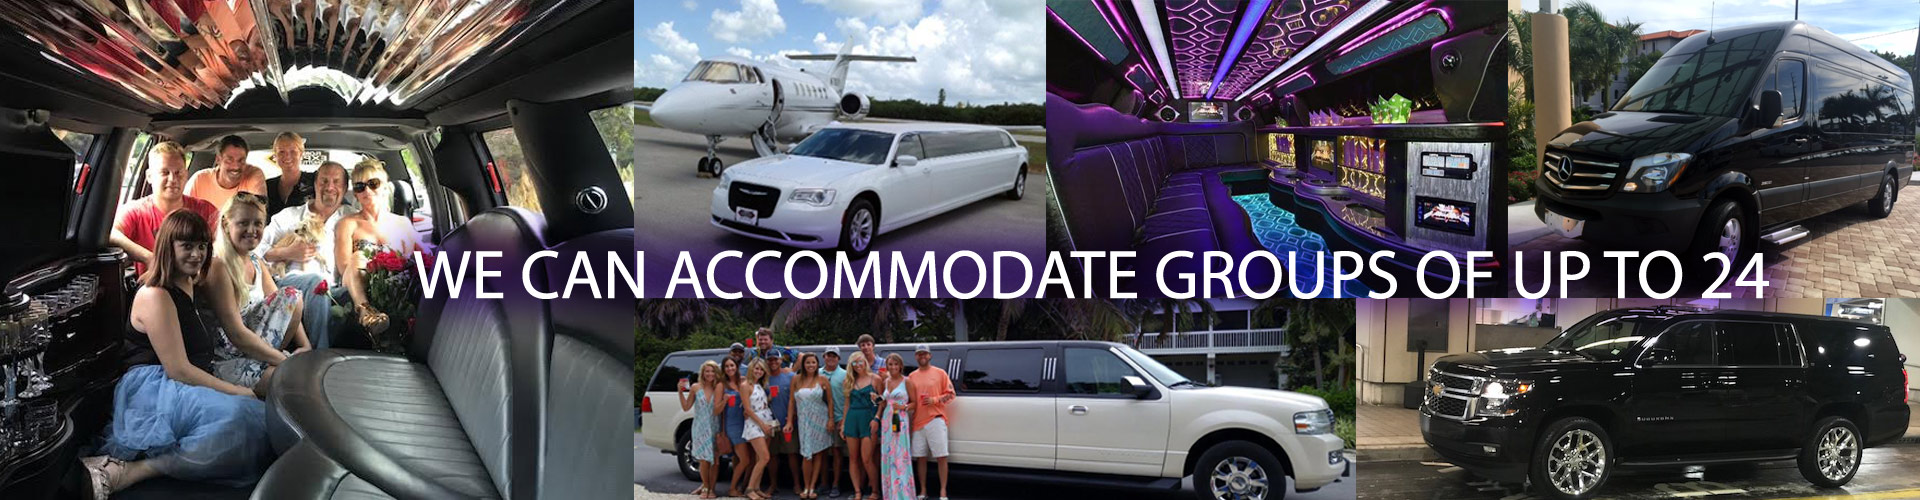 Limo Rental In The Florida Keys Limousine And Car Service